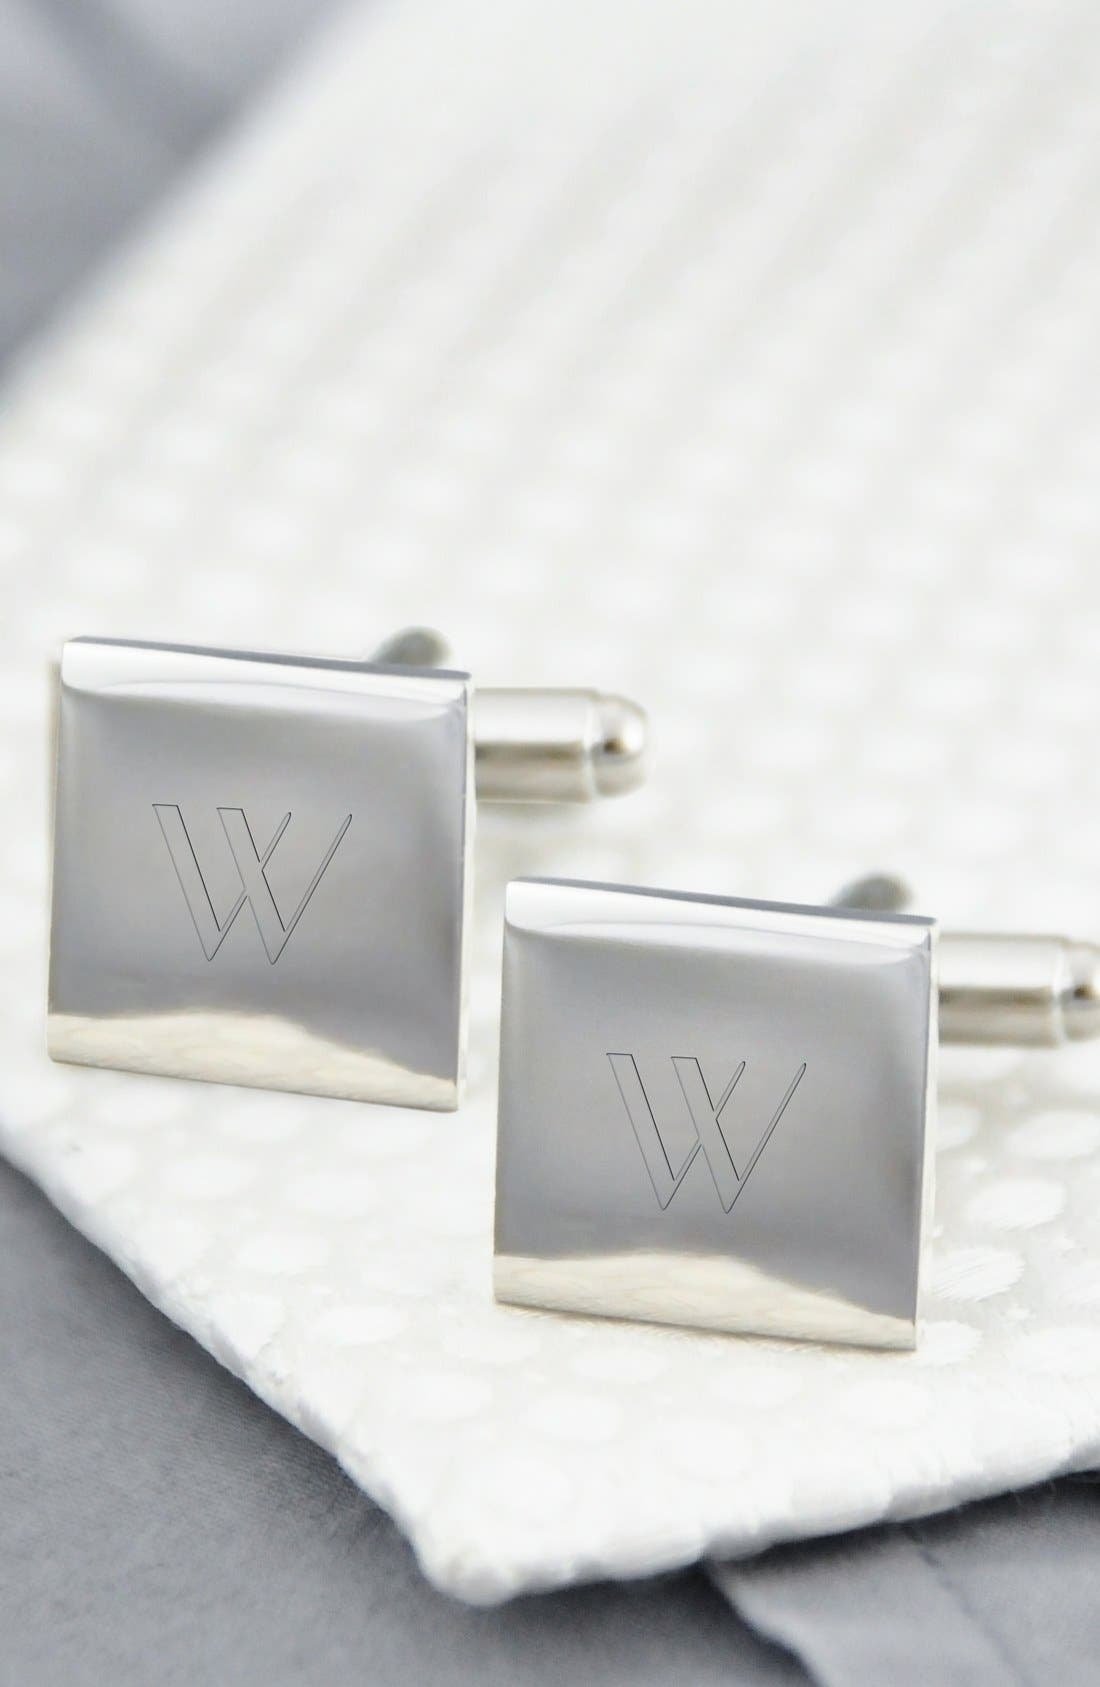 Monogram Square Cuff Links,                             Main thumbnail 1, color,                             W